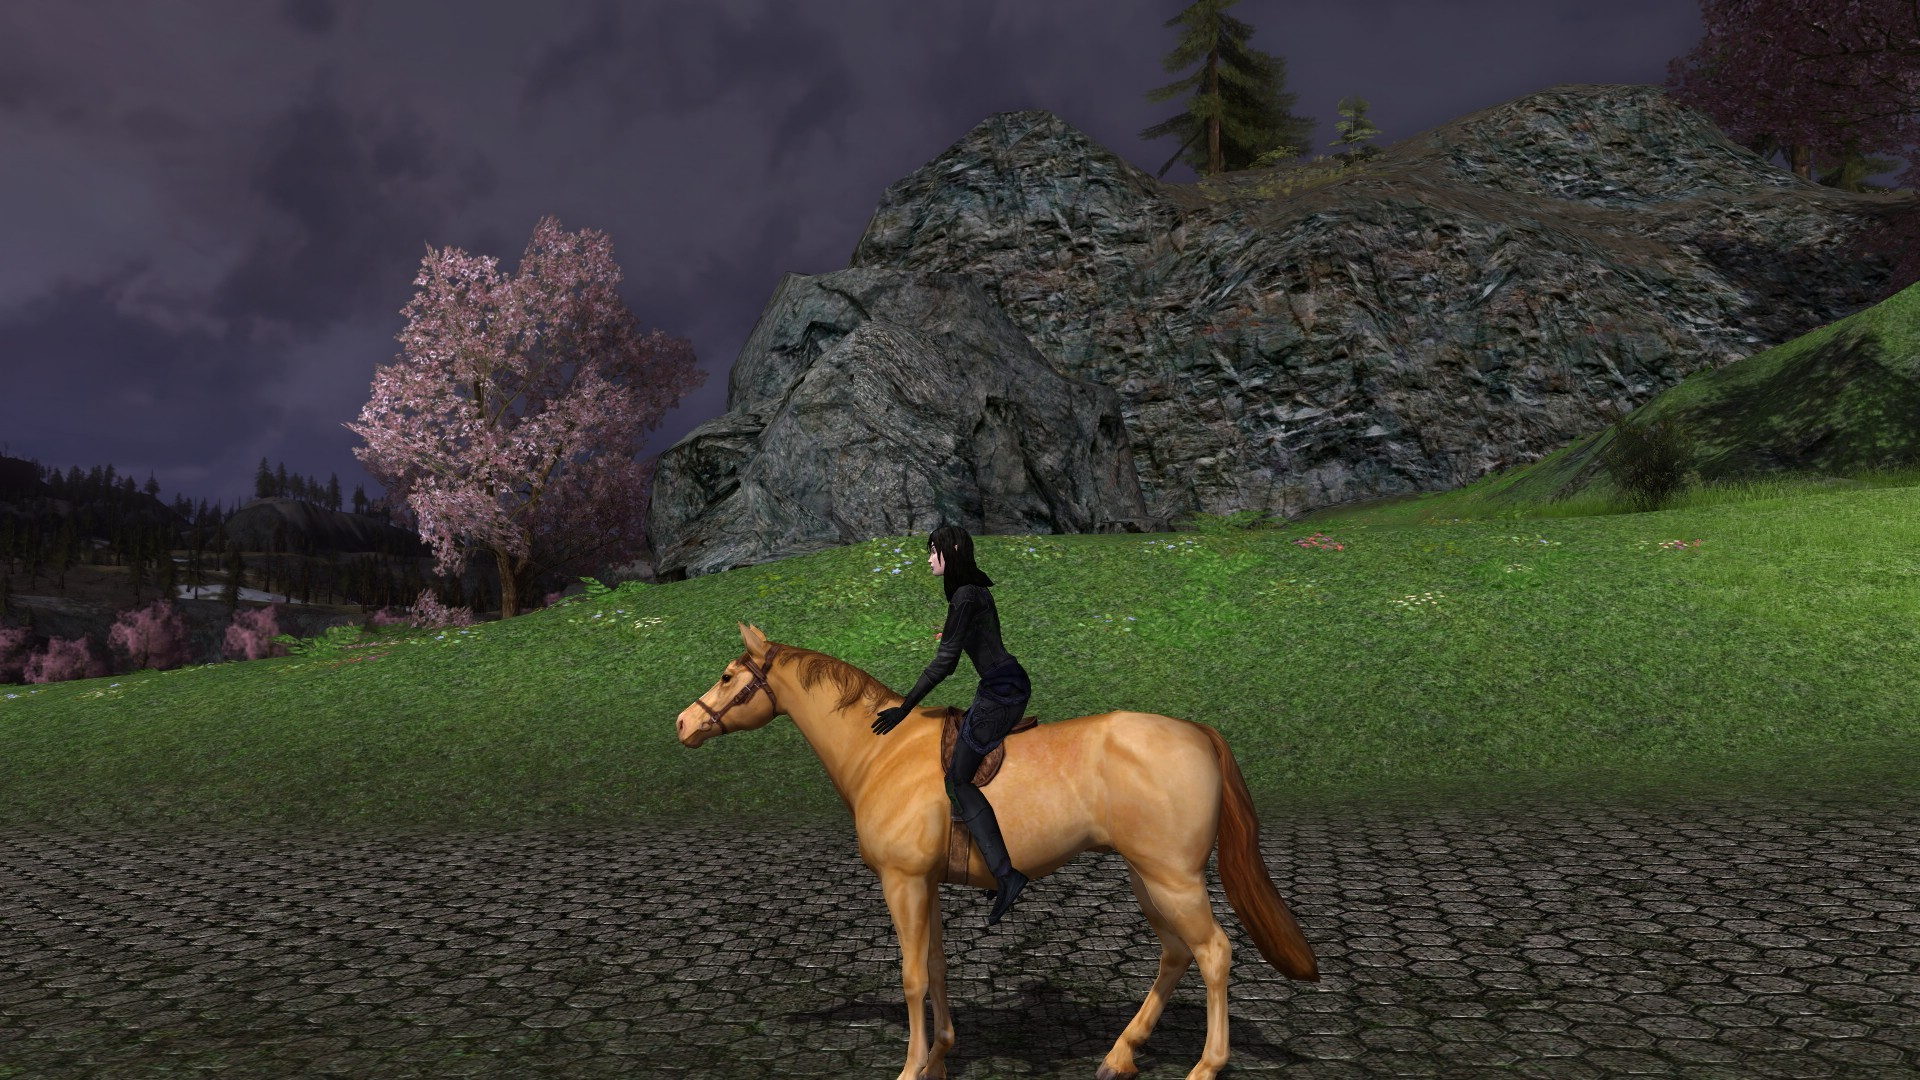 Lord of the Rings Online - Tulueria on her horse